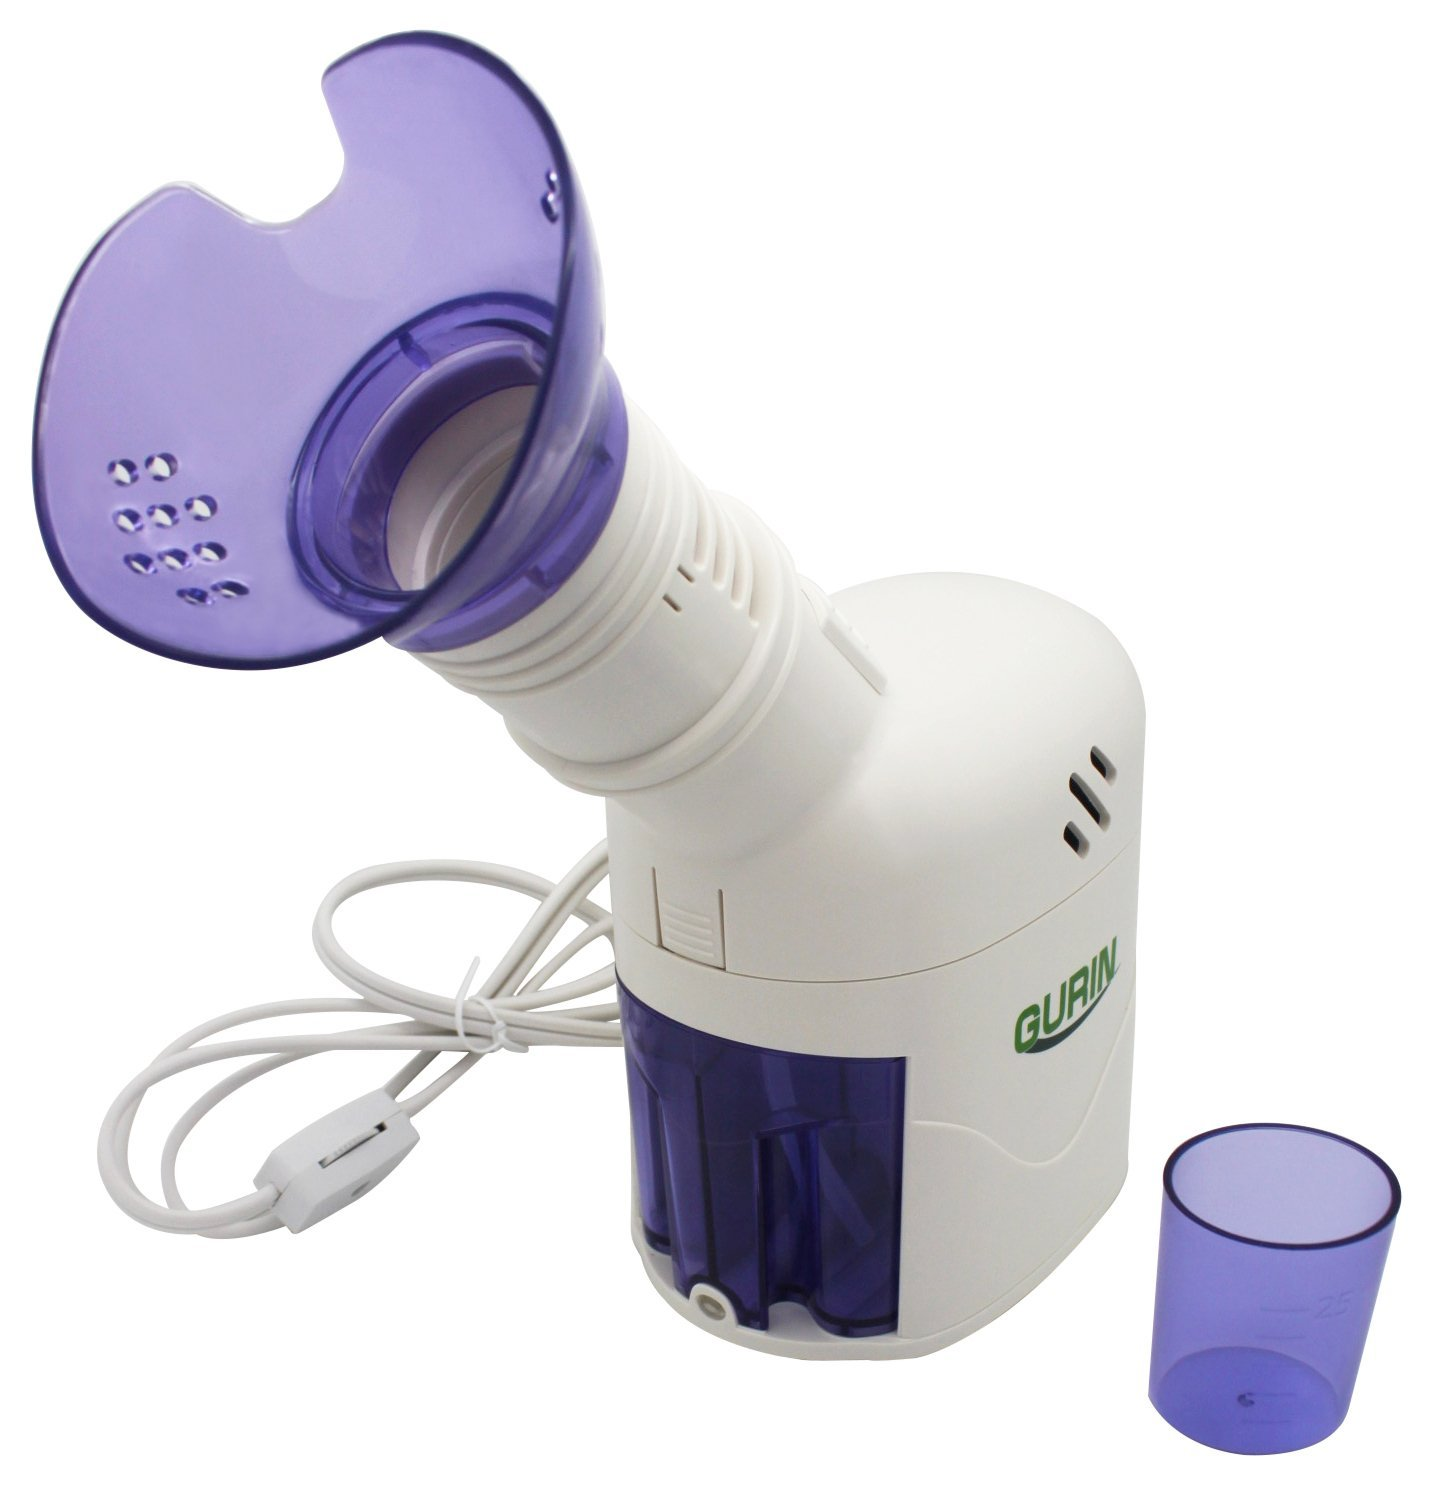 Gurin GSI-110 Steam Inhaler And Mask